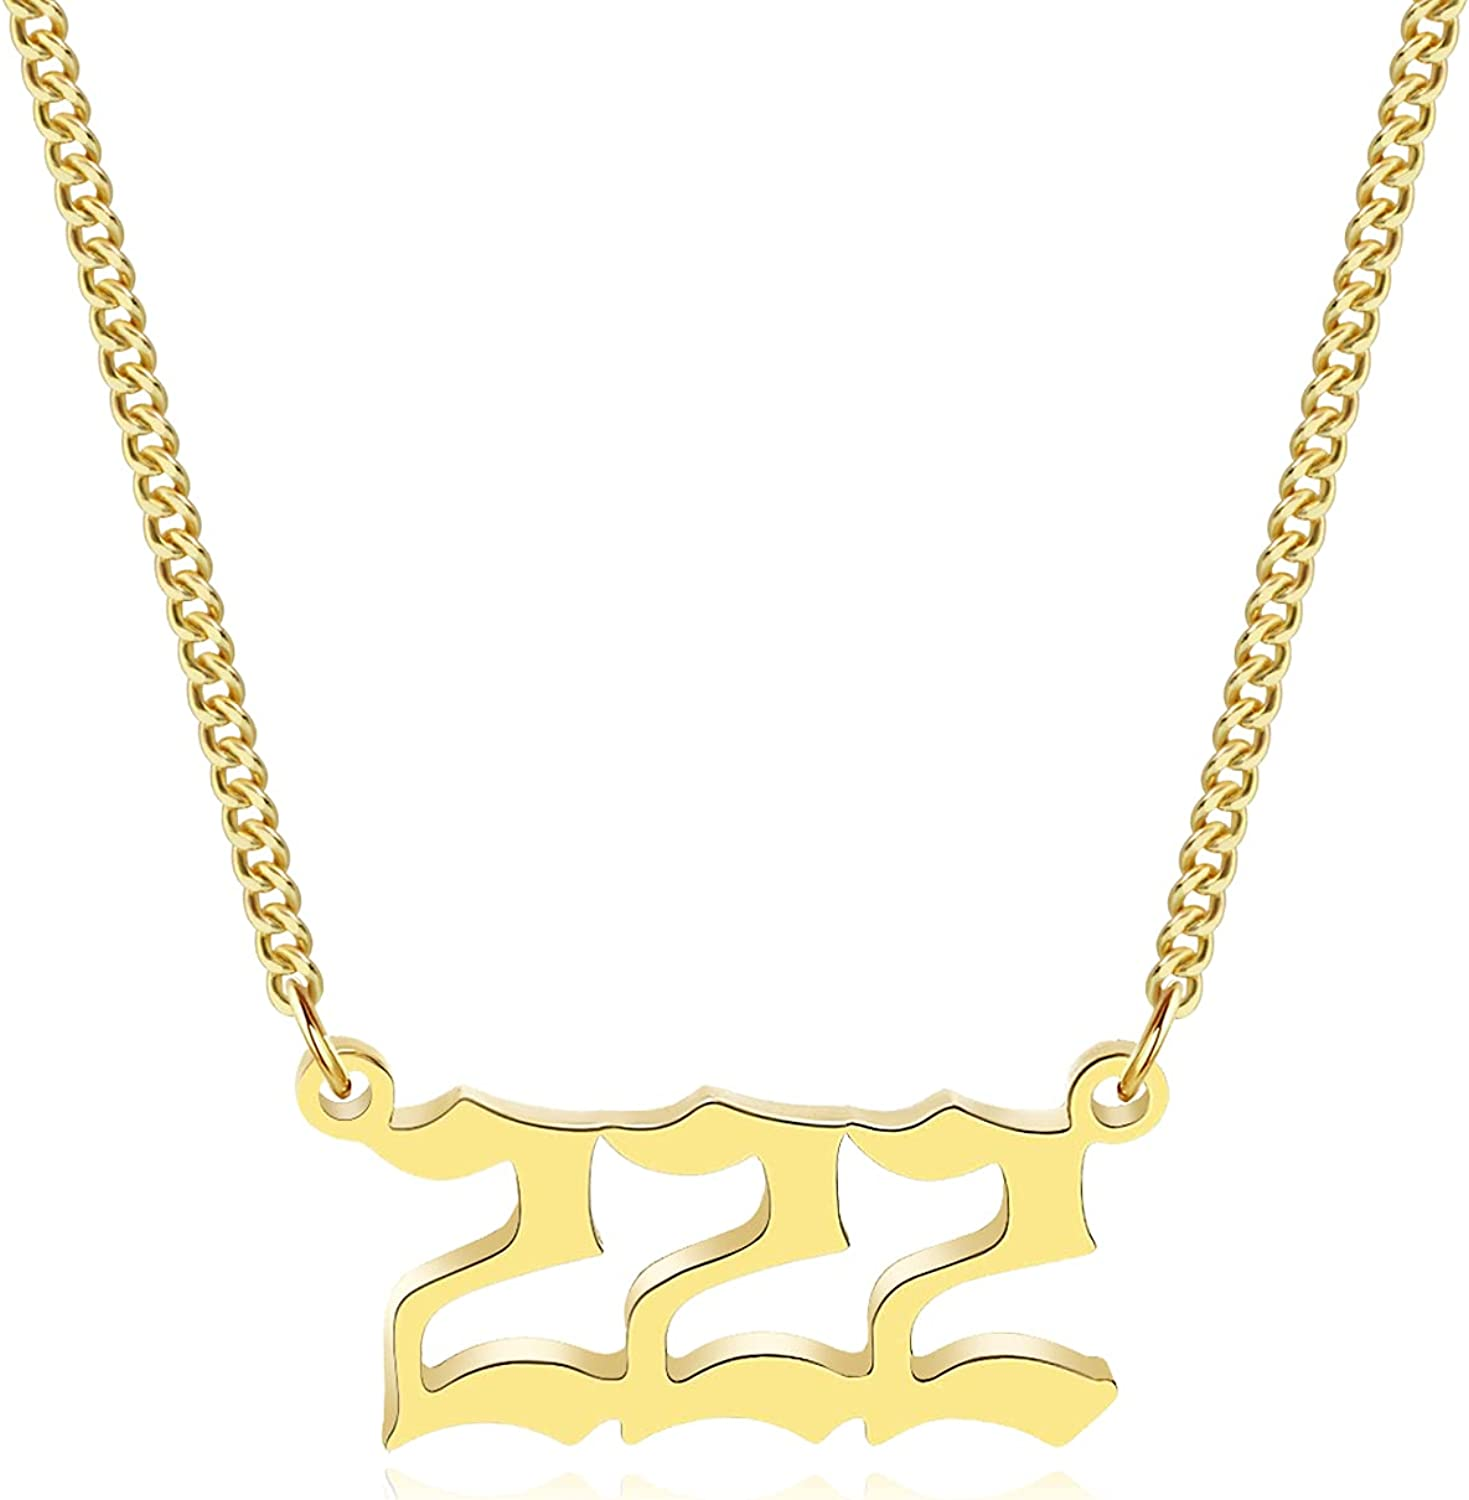 HOISH Angel Number Necklace for Women Dainty Gold Number Necklace 000 111 222 333 444 555 666 777 888 999 Pendant Necklaces Choker Chain for Teen Girls